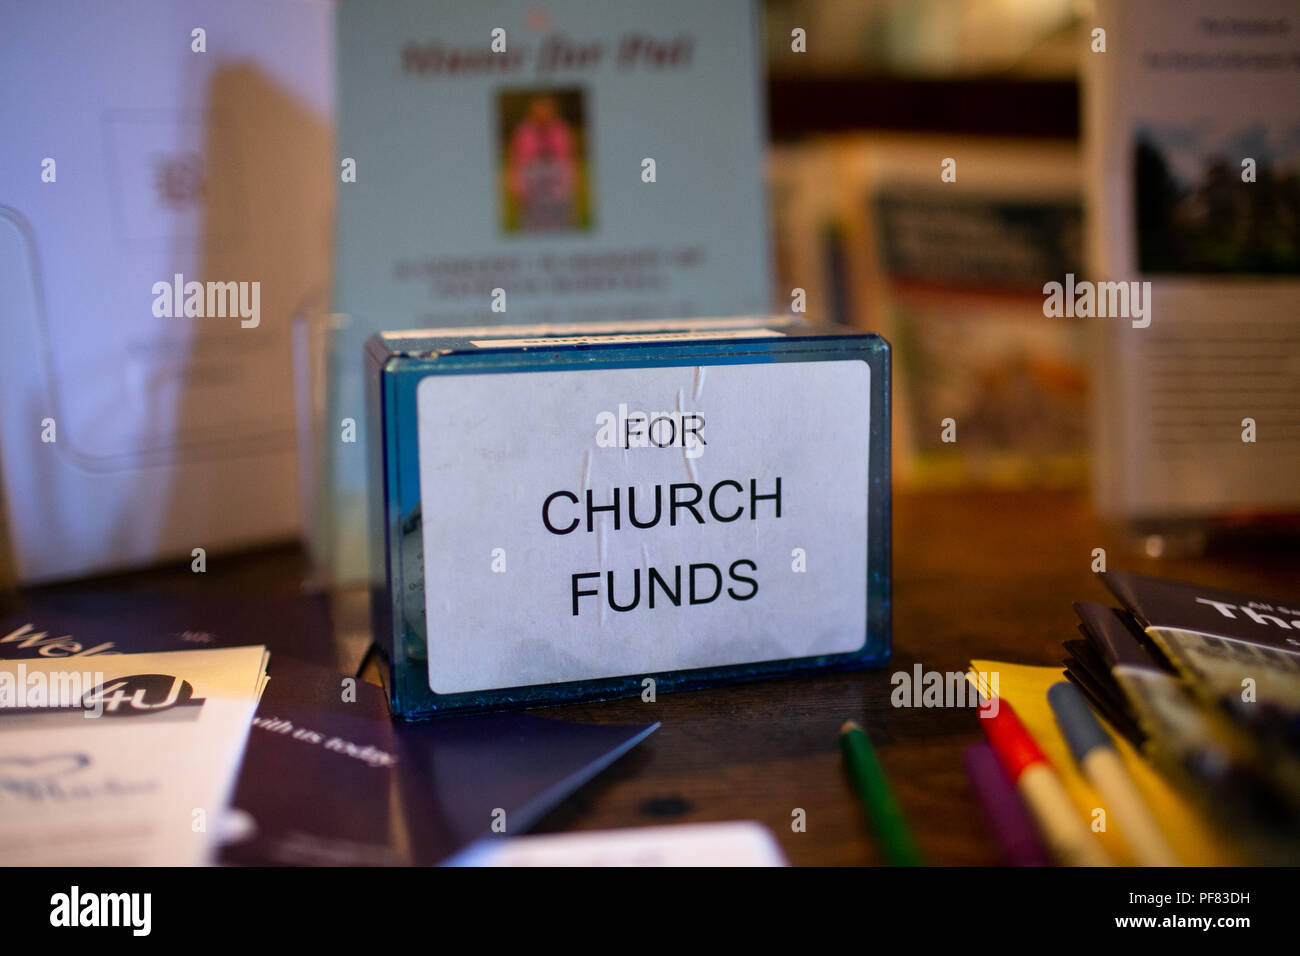 Money box for church funds in an english church - Stock Image